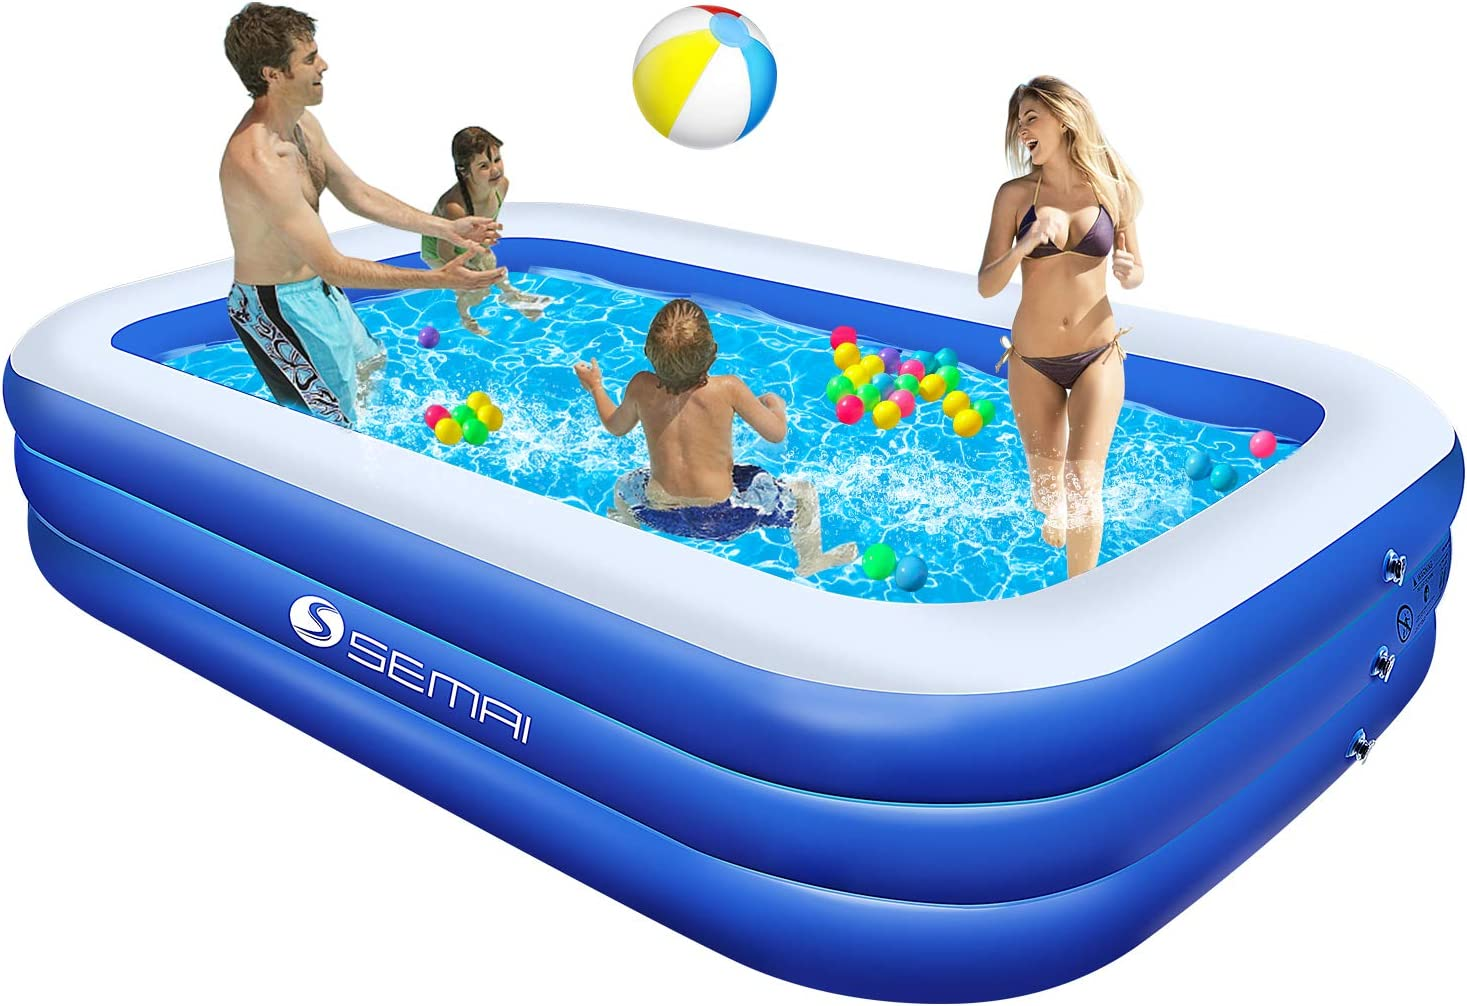 Family Inflatable Swimming Pool Semai 118 X72 X20 Full Sized Inflatable Lounge Pool For Kiddie Kids Adults Toddlers For Ages 3 Swimming Pool For Backyard Outdoor Blue White Amazon Ca Home Kitchen